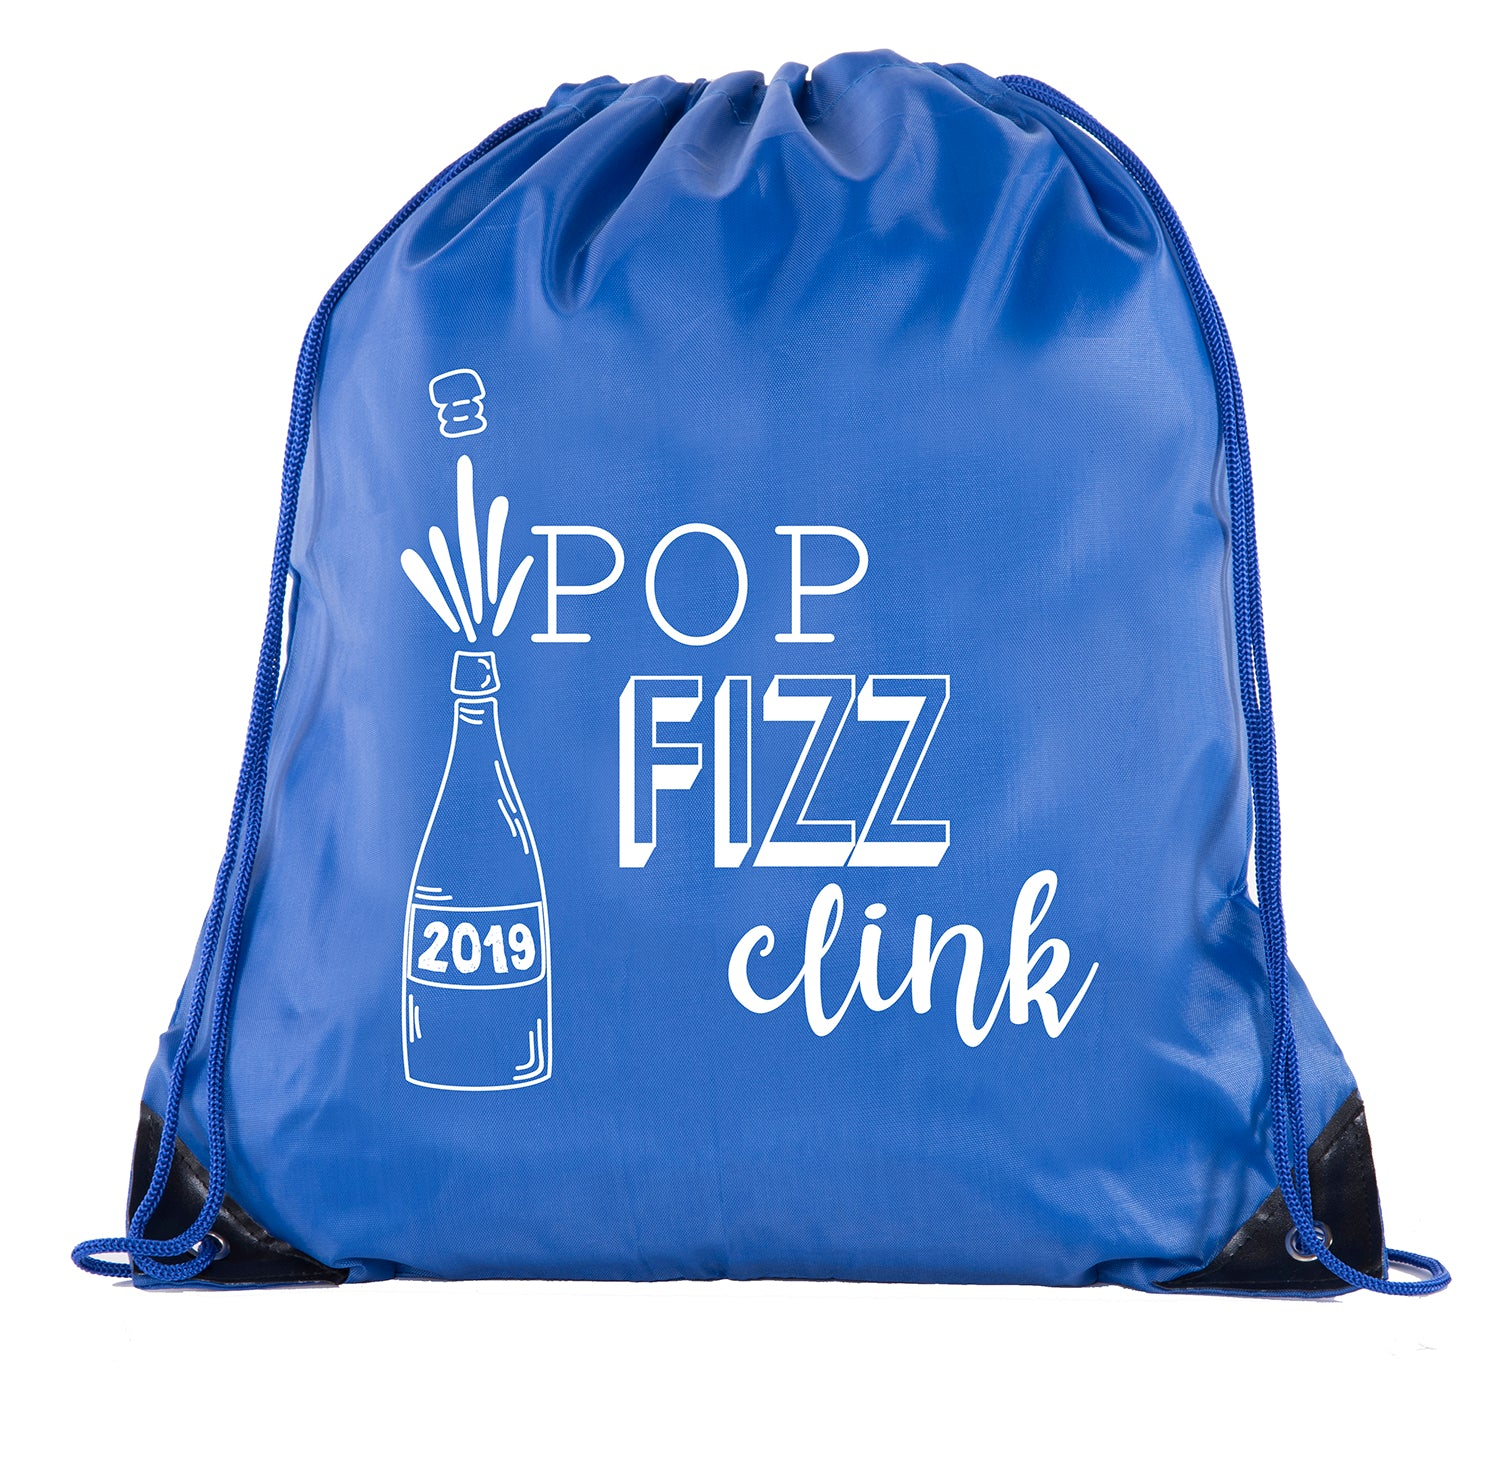 Accessory - New Year's Eve Party Goody Bags, New Years Decorations, 2019 Gift Bags - Popp Fizz Clink